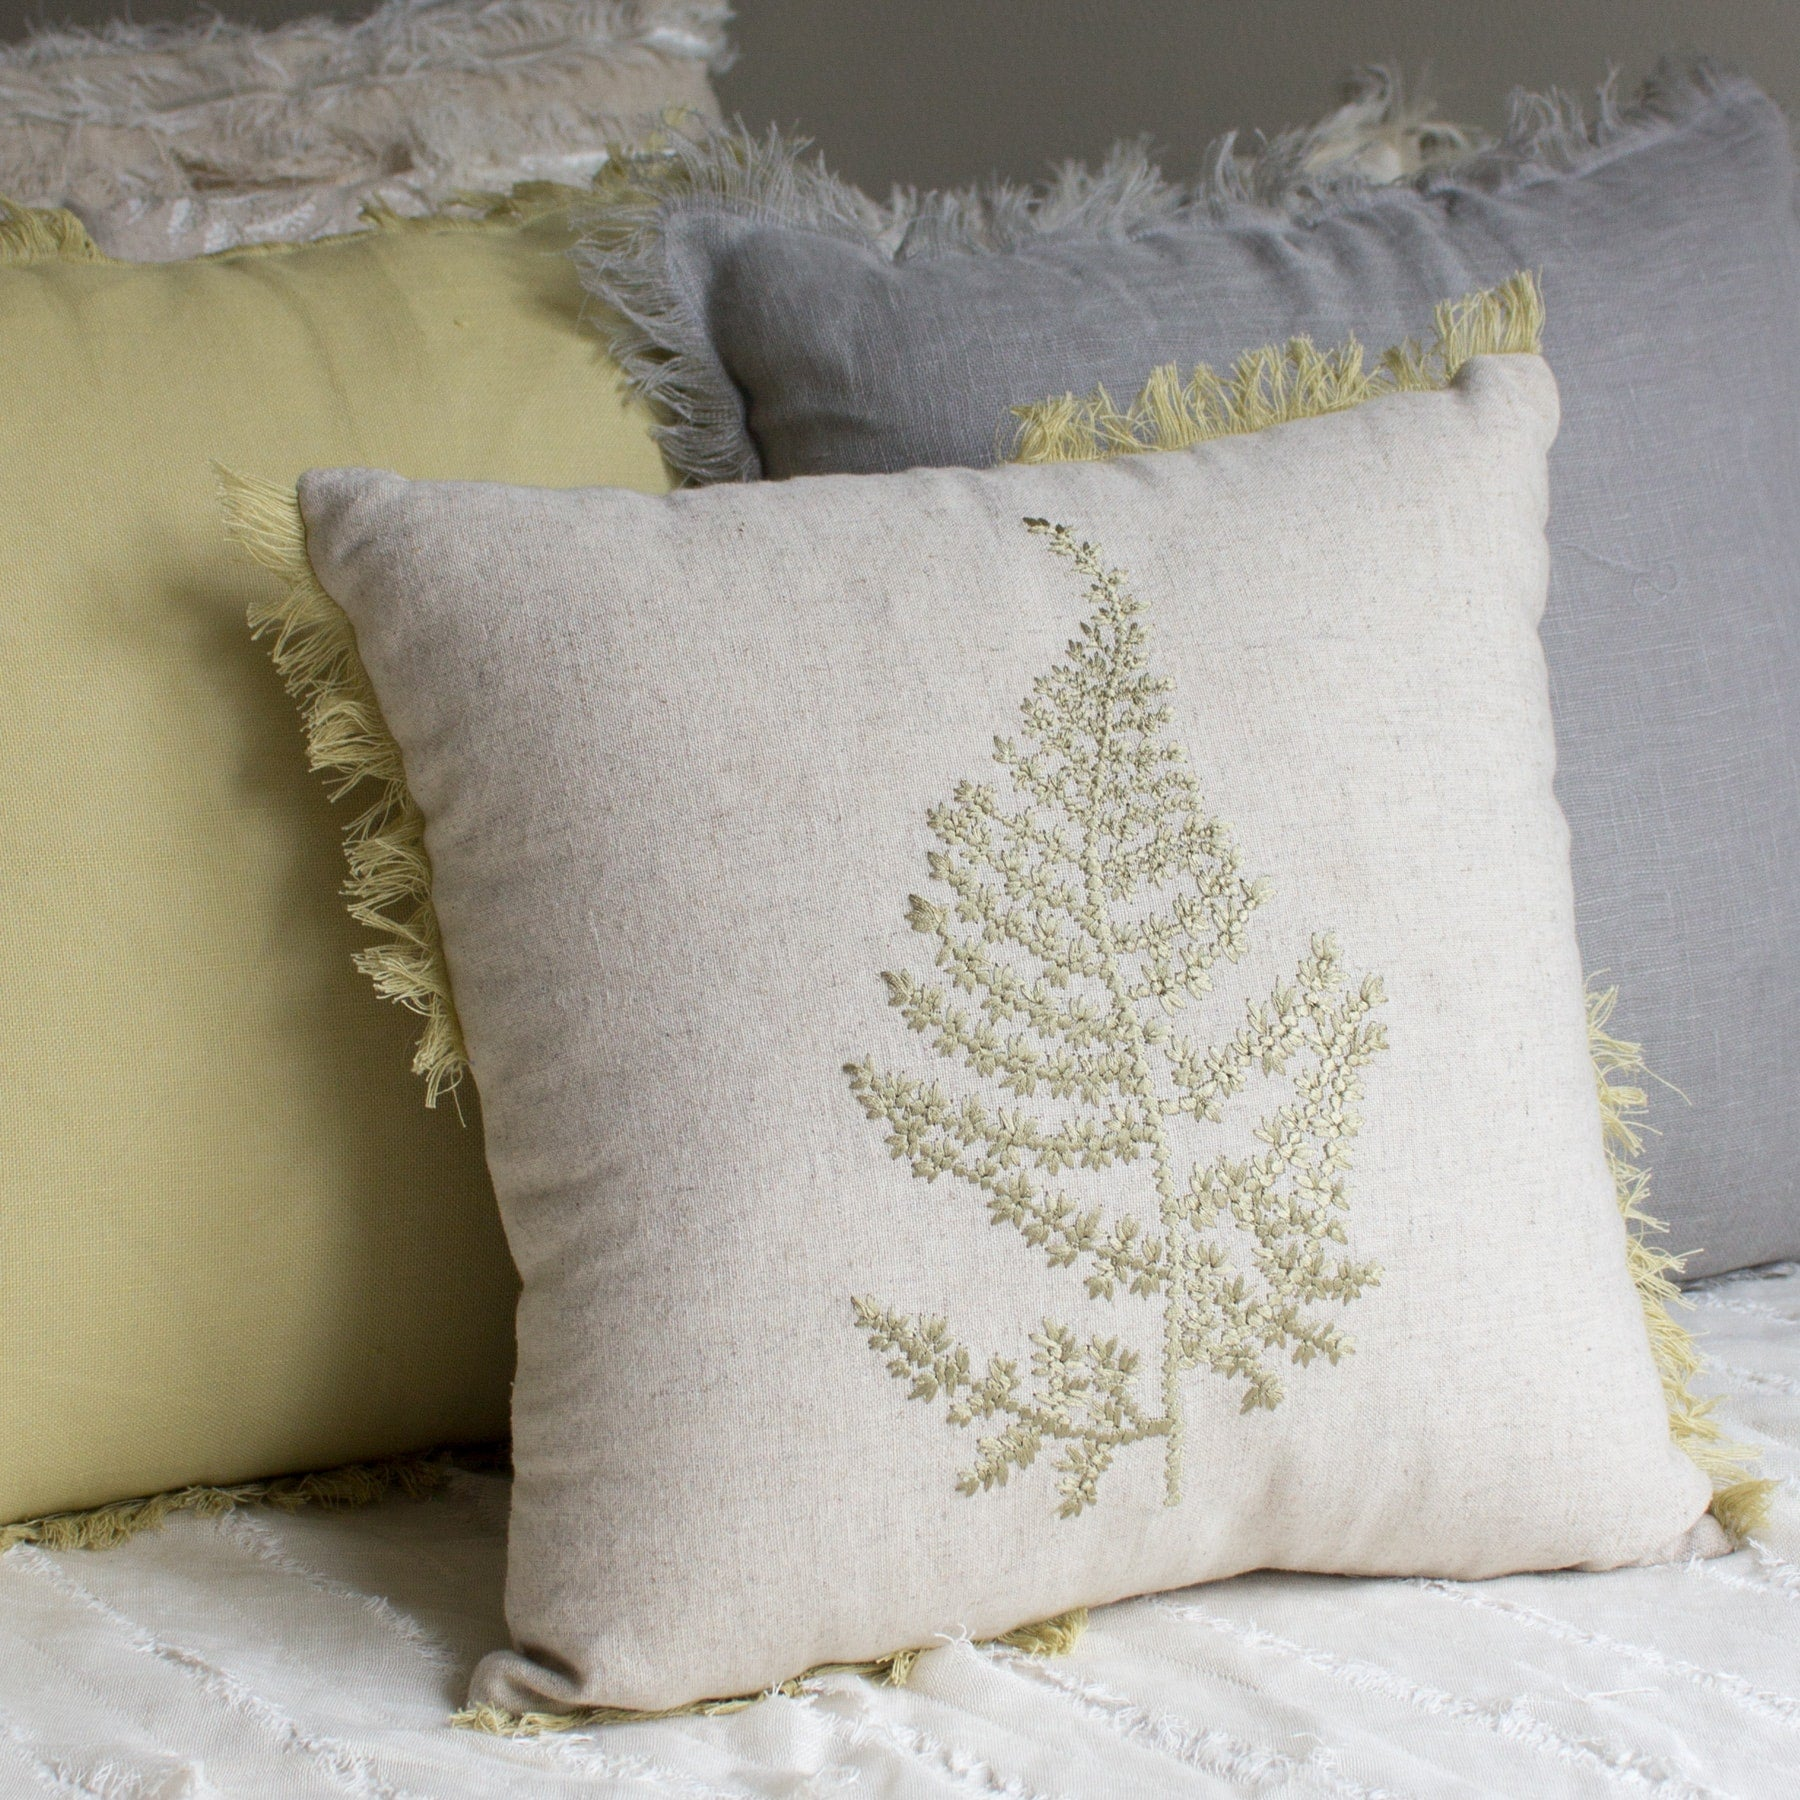 THE MIST CUSHION COVER